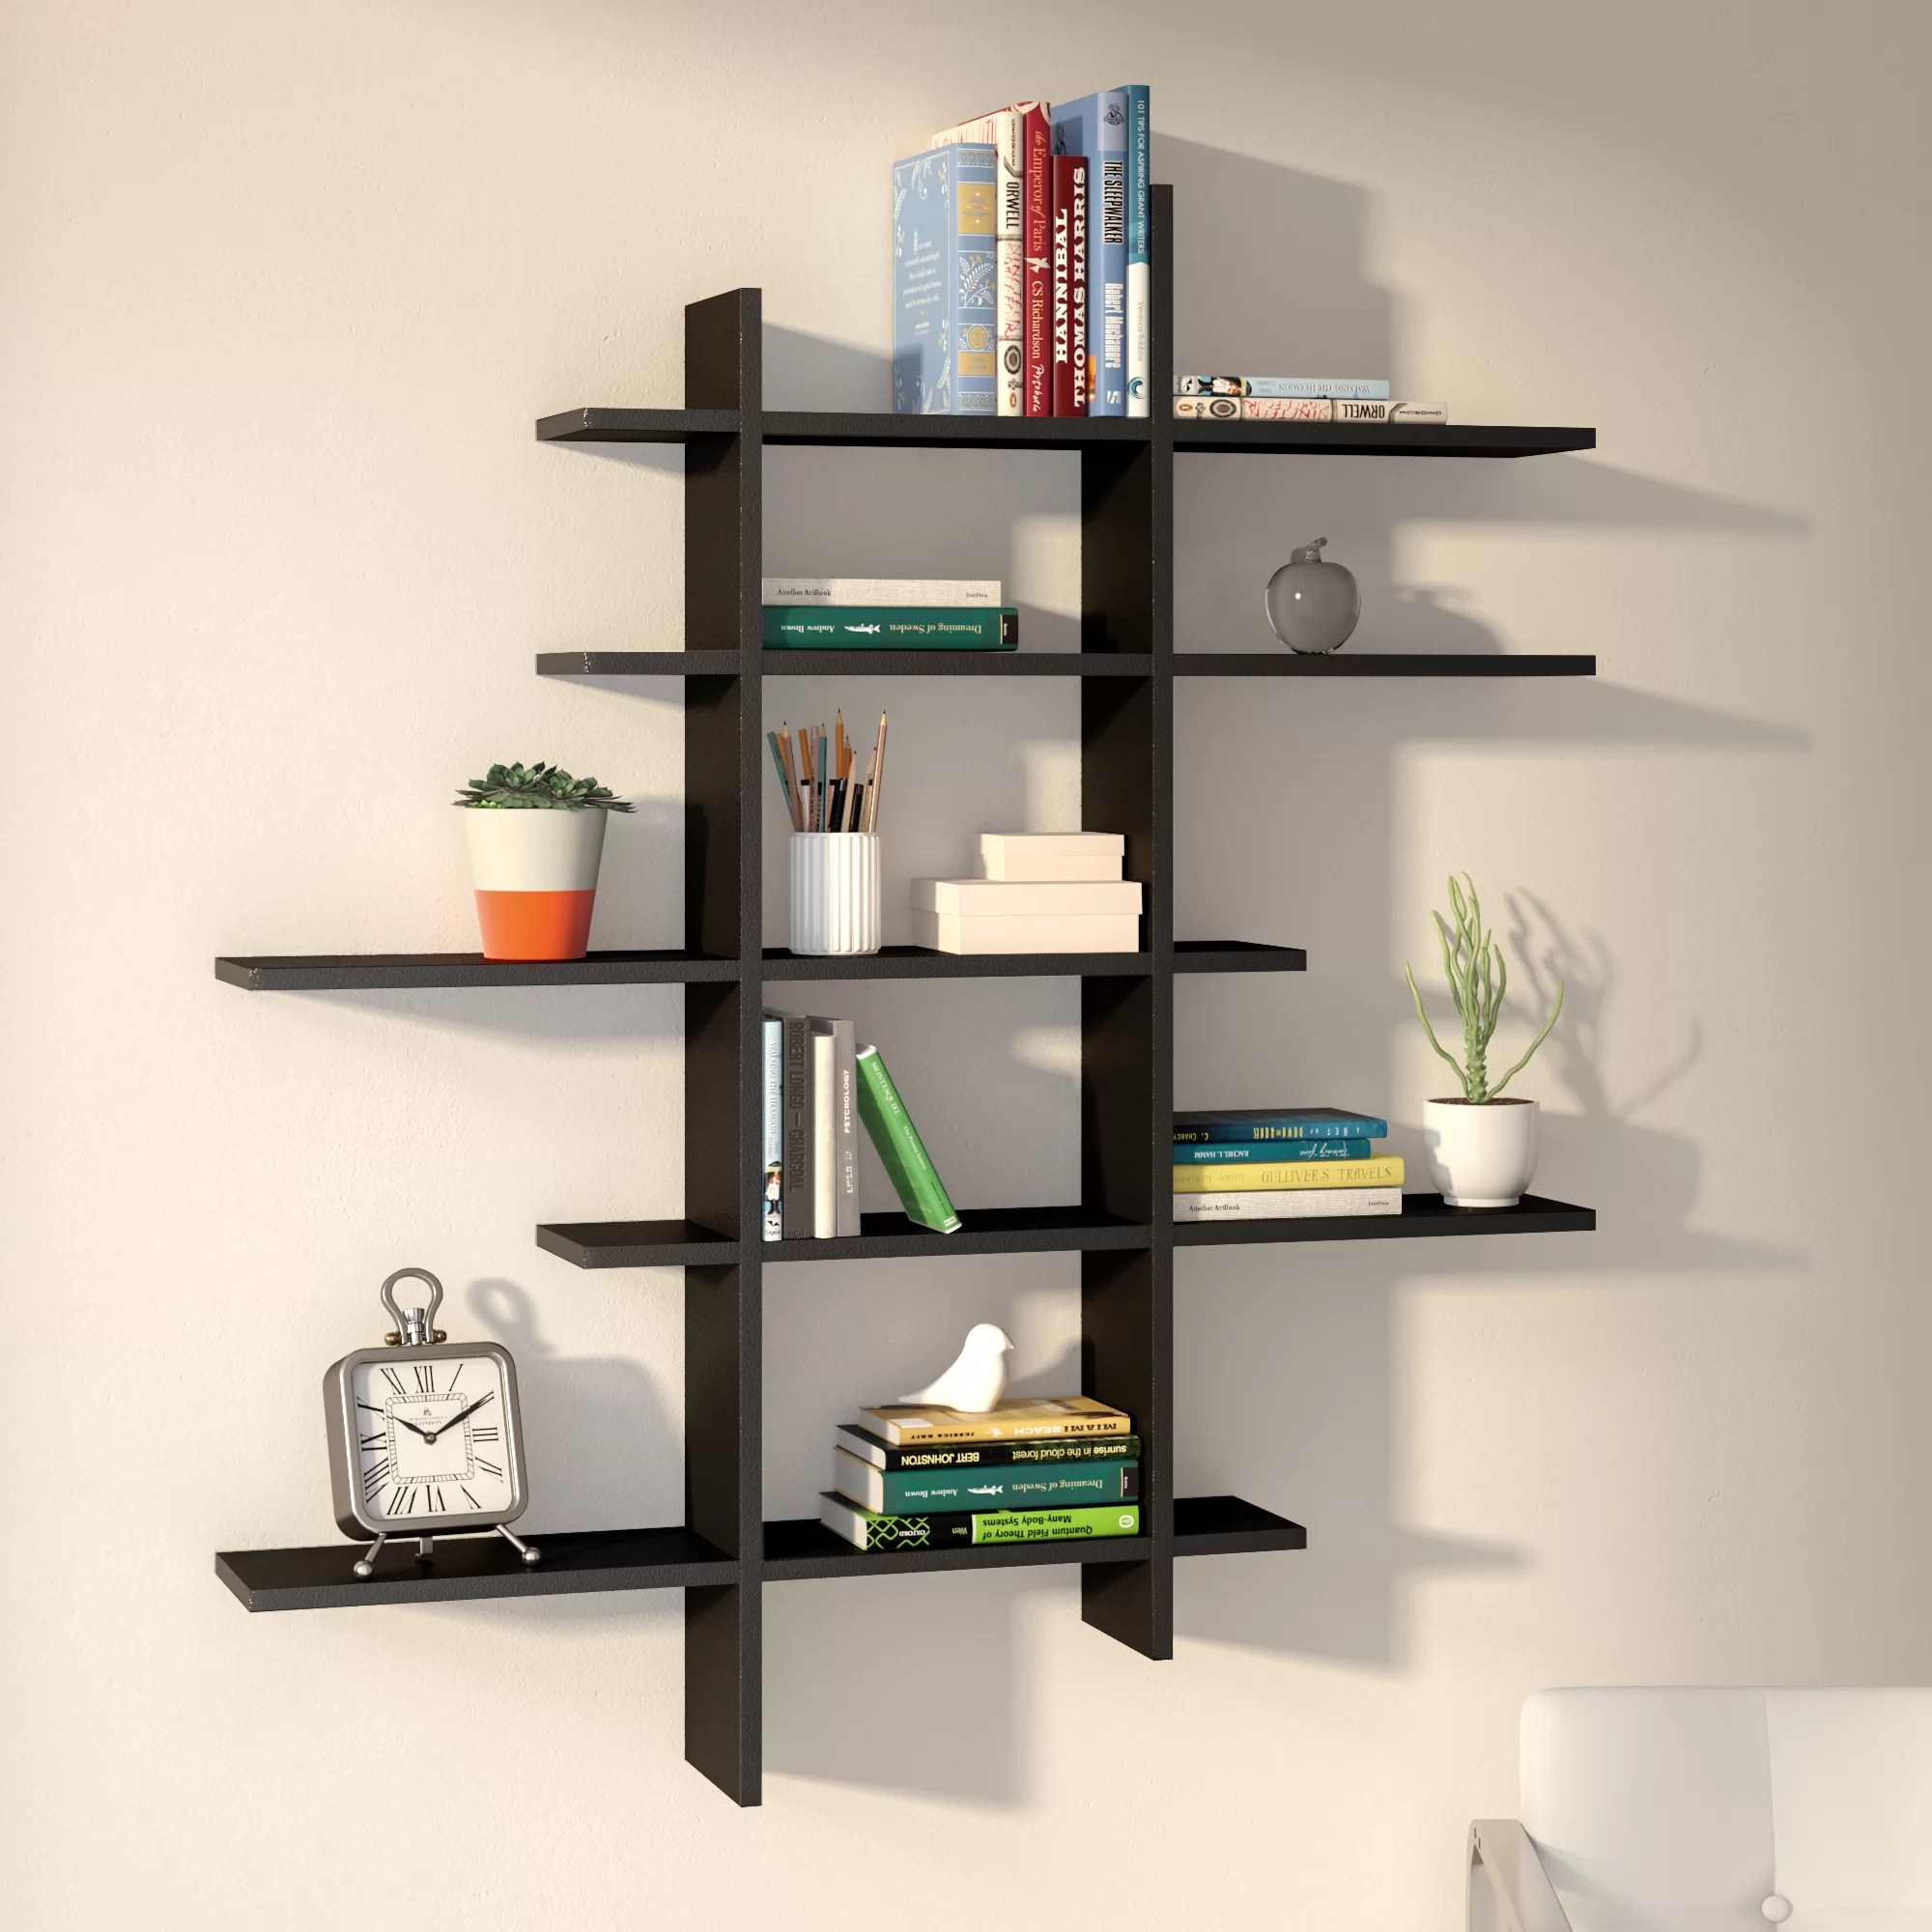 Wall Shelf Design Baileyville 5 Shelf Asymmetric Wall Shelf